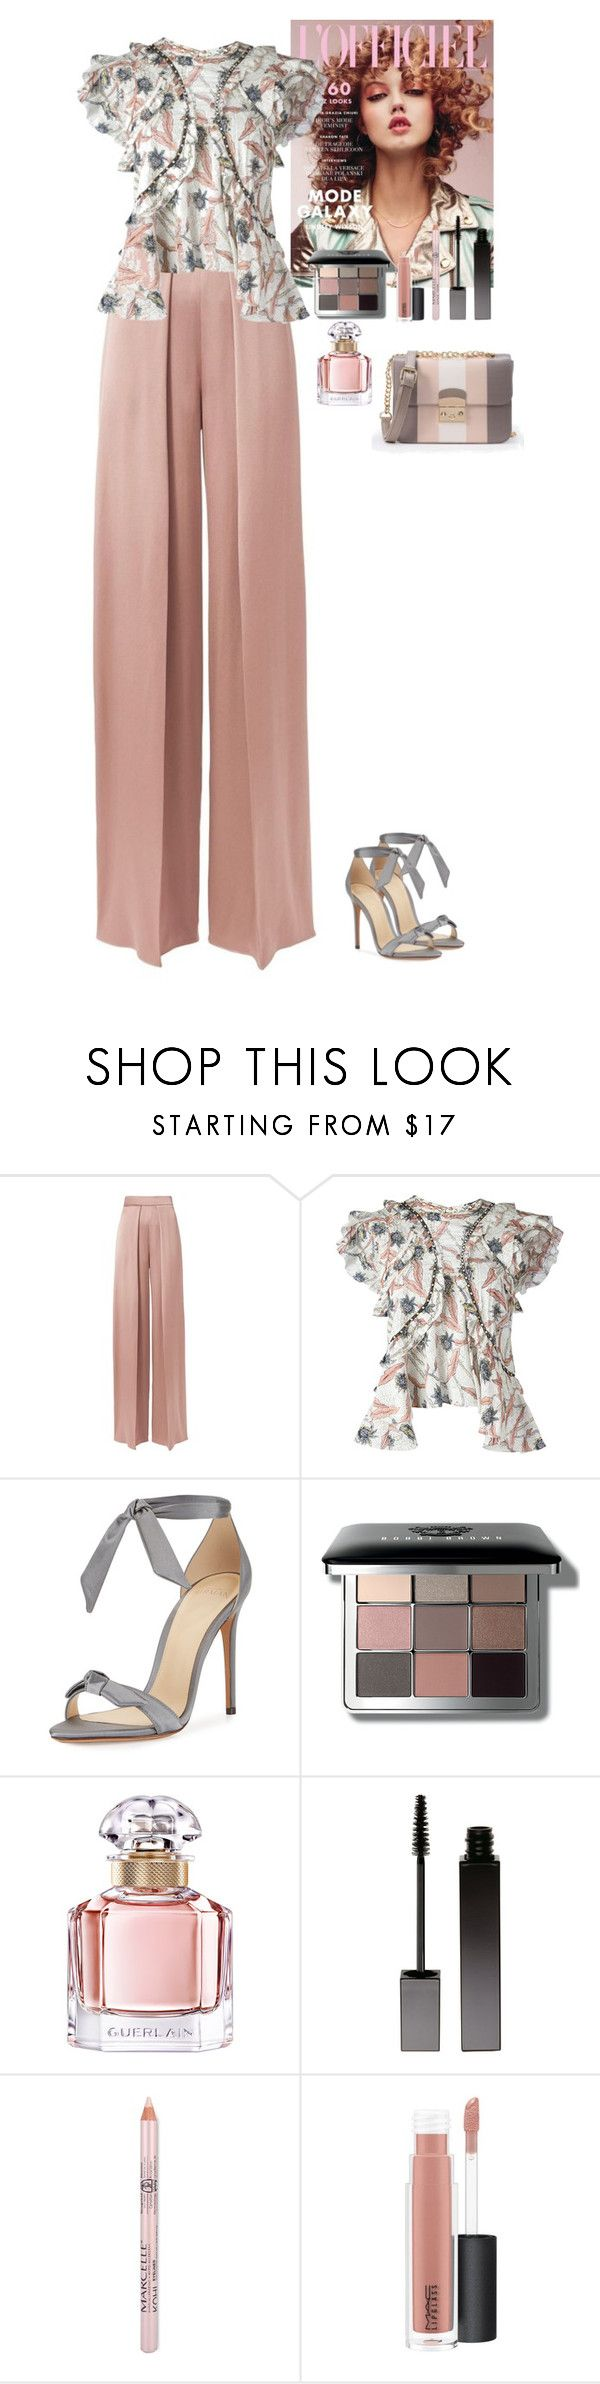 """""""Spring outfit"""" by eliza-redkina ❤ liked on Polyvore featuring Cushnie Et Ochs, Isabel Marant, Alexandre Birman, Bobbi Brown Cosmetics, Guerlain, Serge Lutens, MAC Cosmetics, WithChic, outfit and like"""